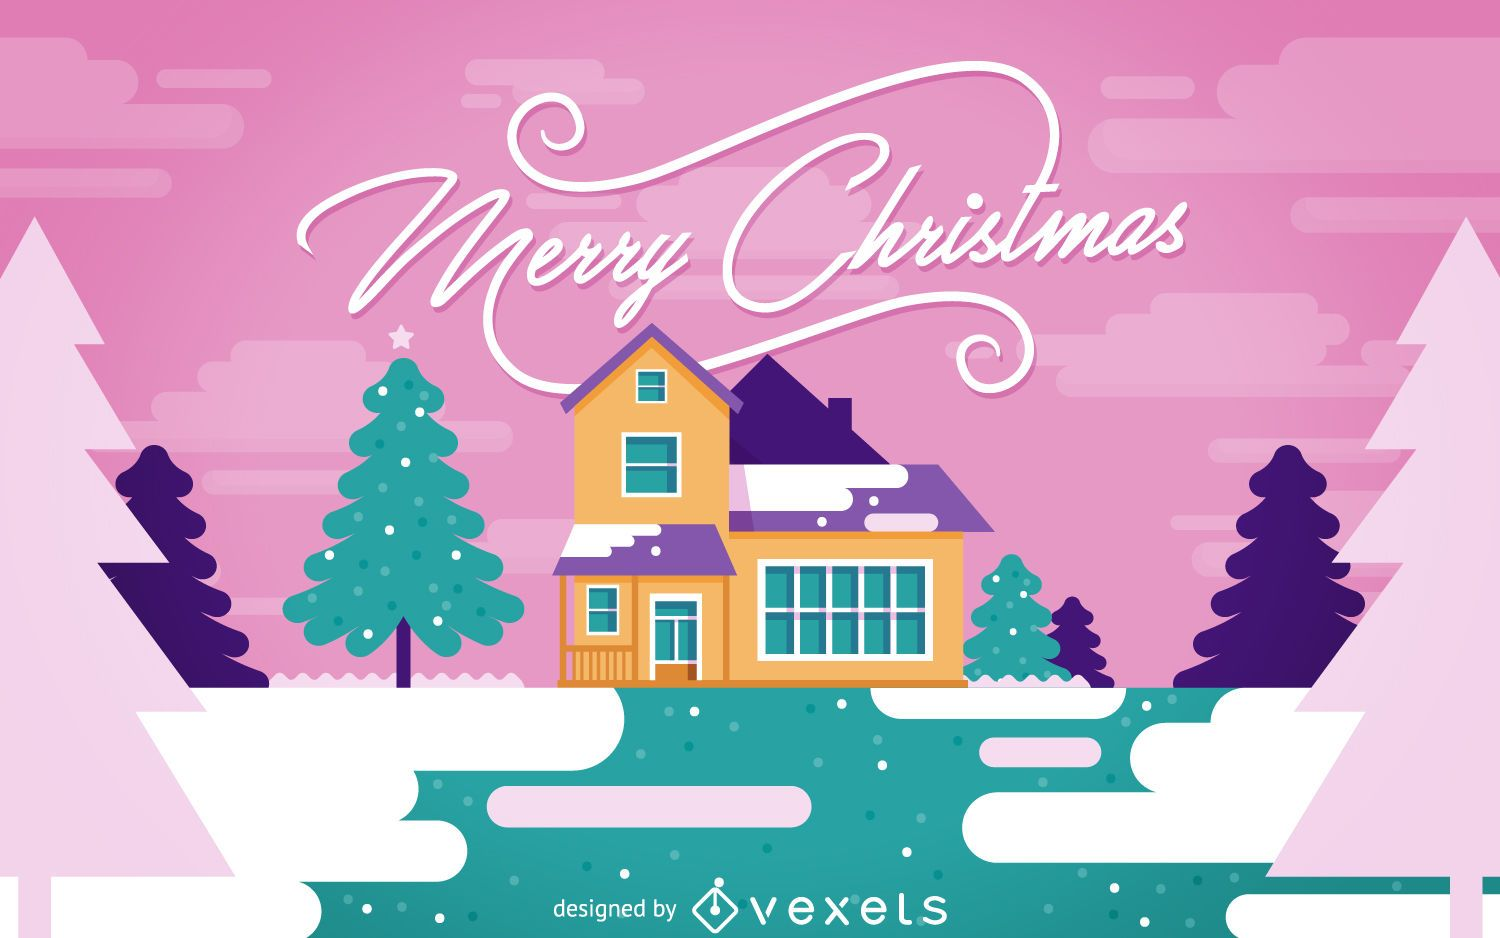 Christmas design with snowy house